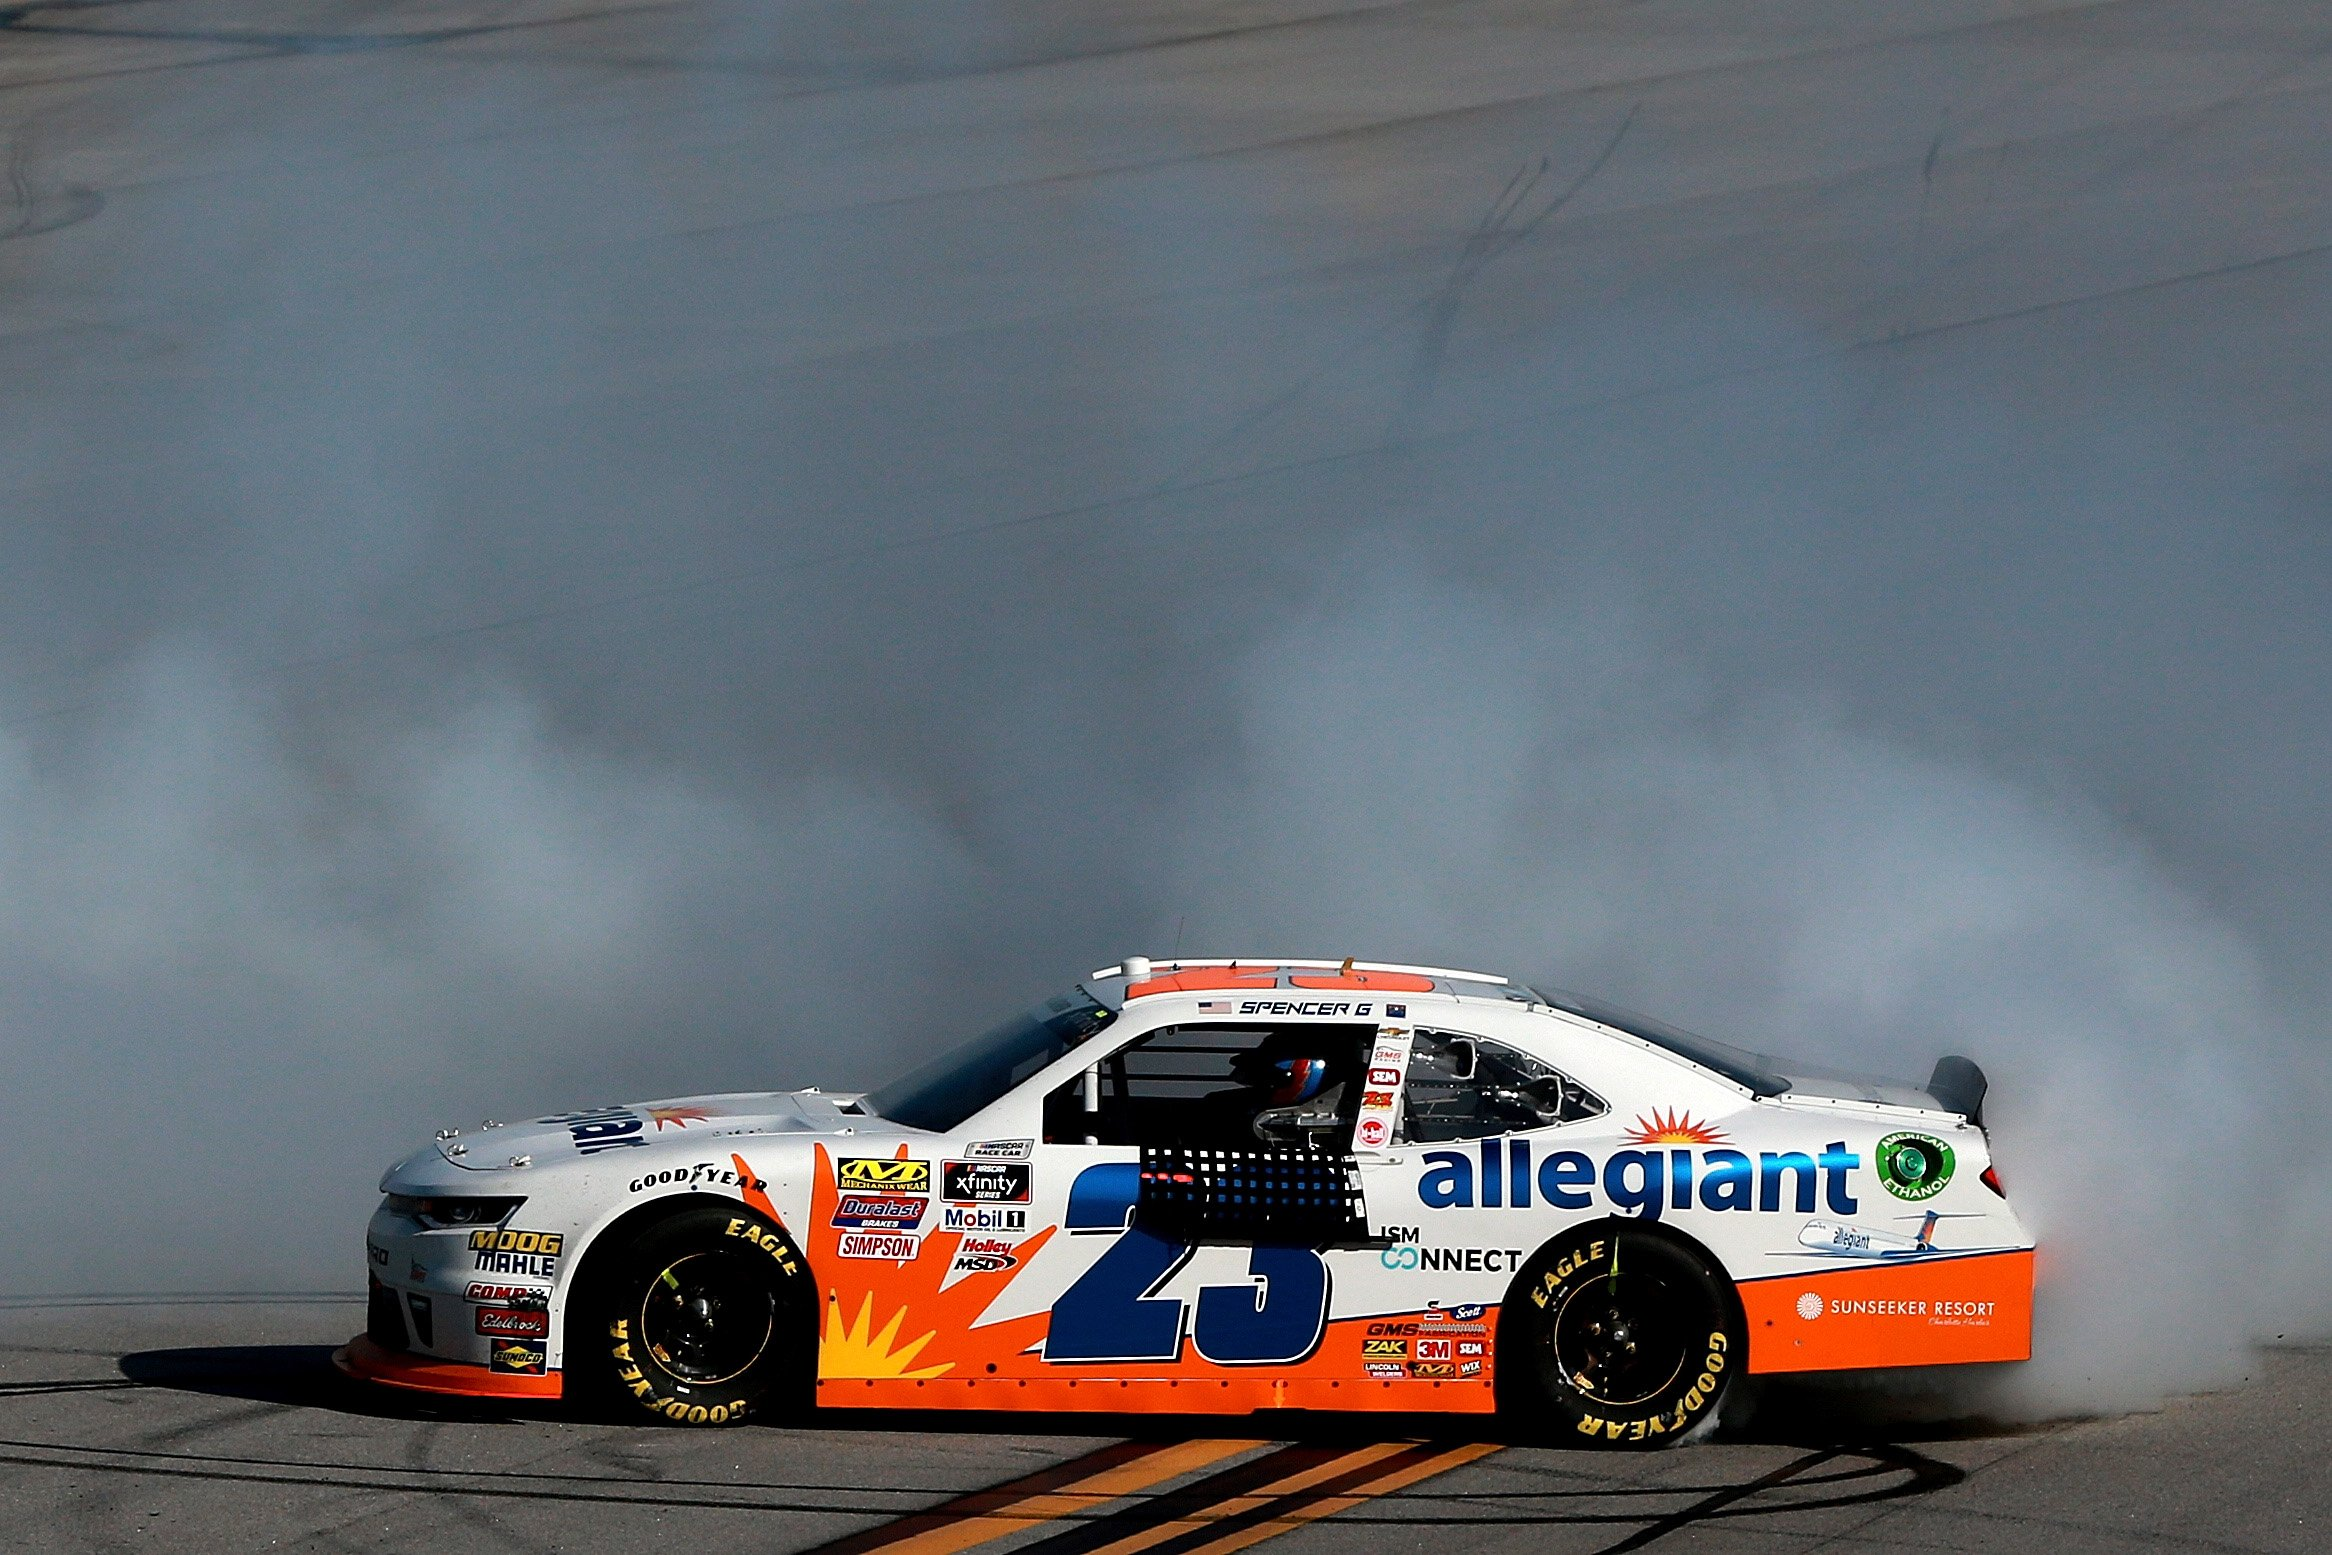 Spencer Gallagher - Allegiant Airlines NASCAR race car